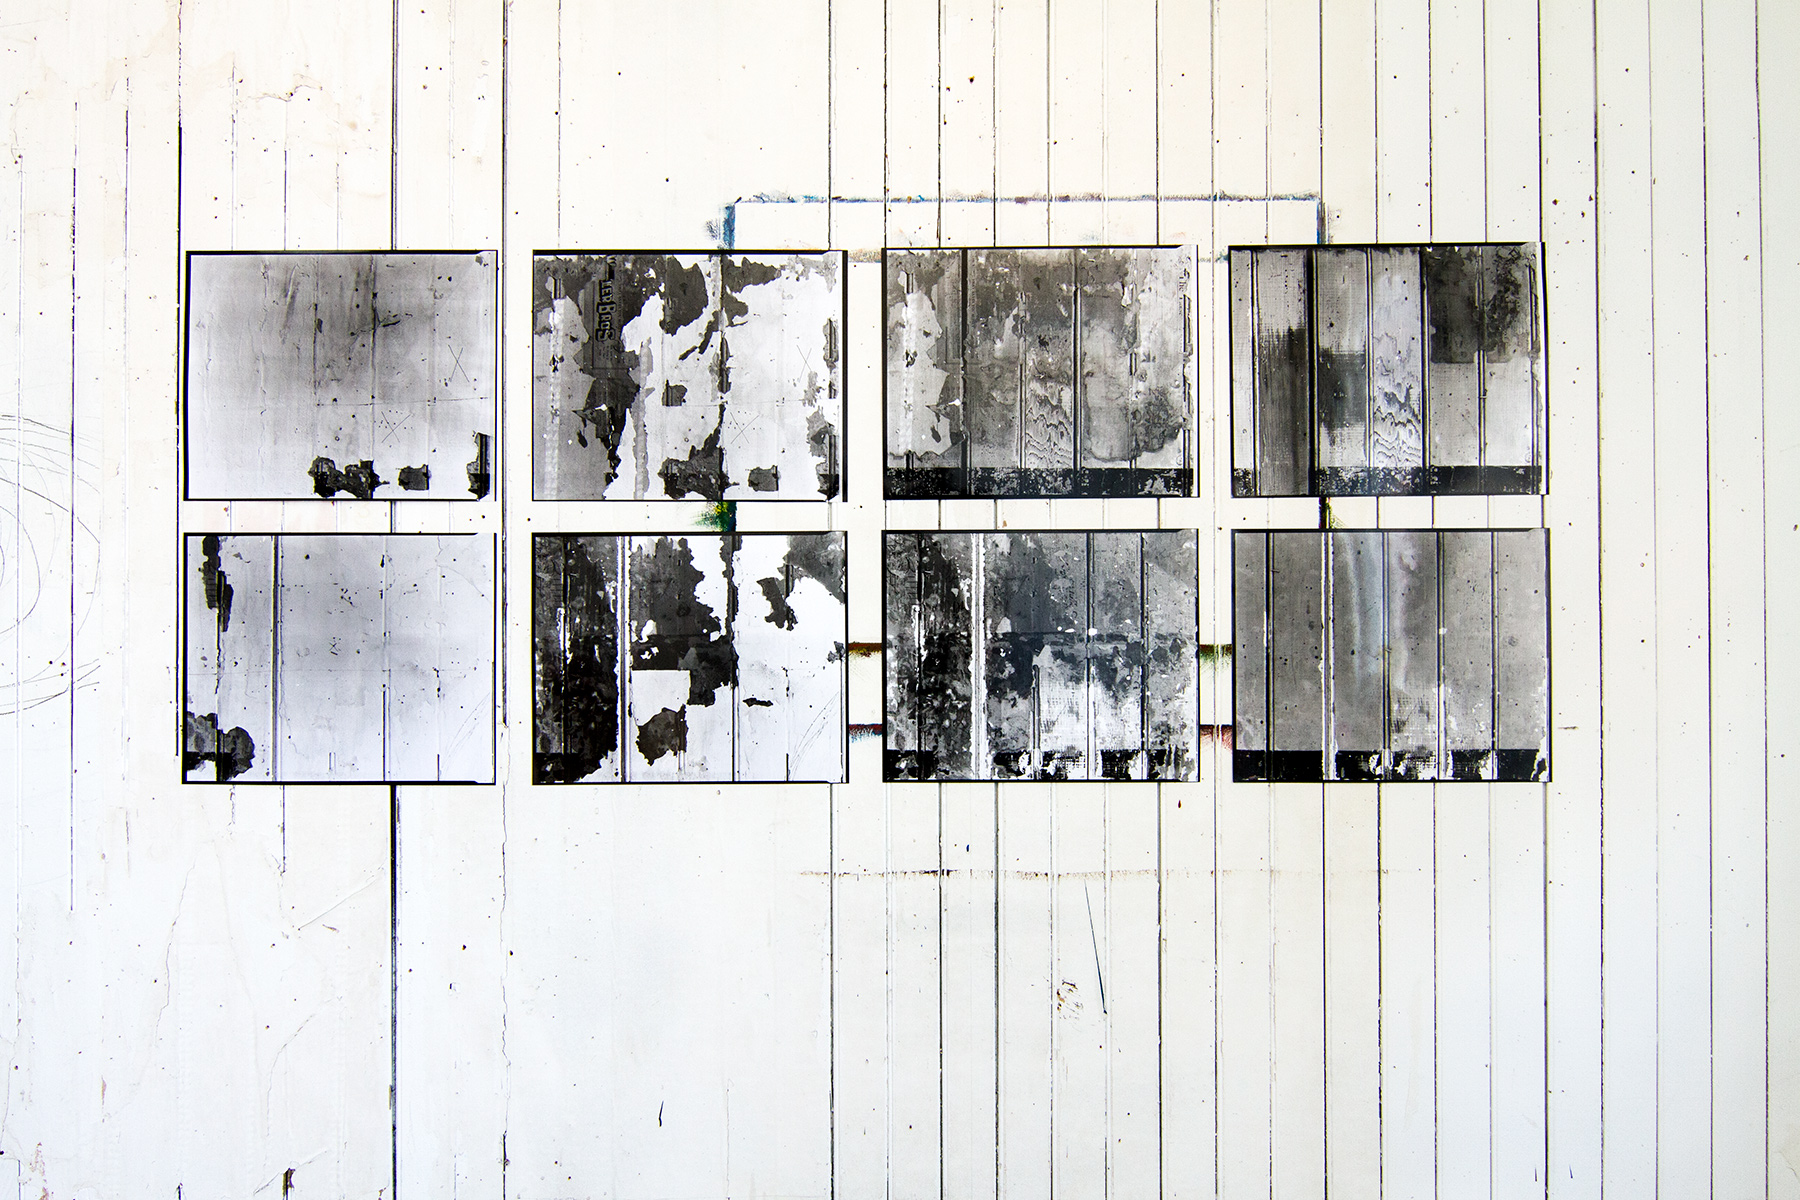 8 16x20 contact sheets of wall peel